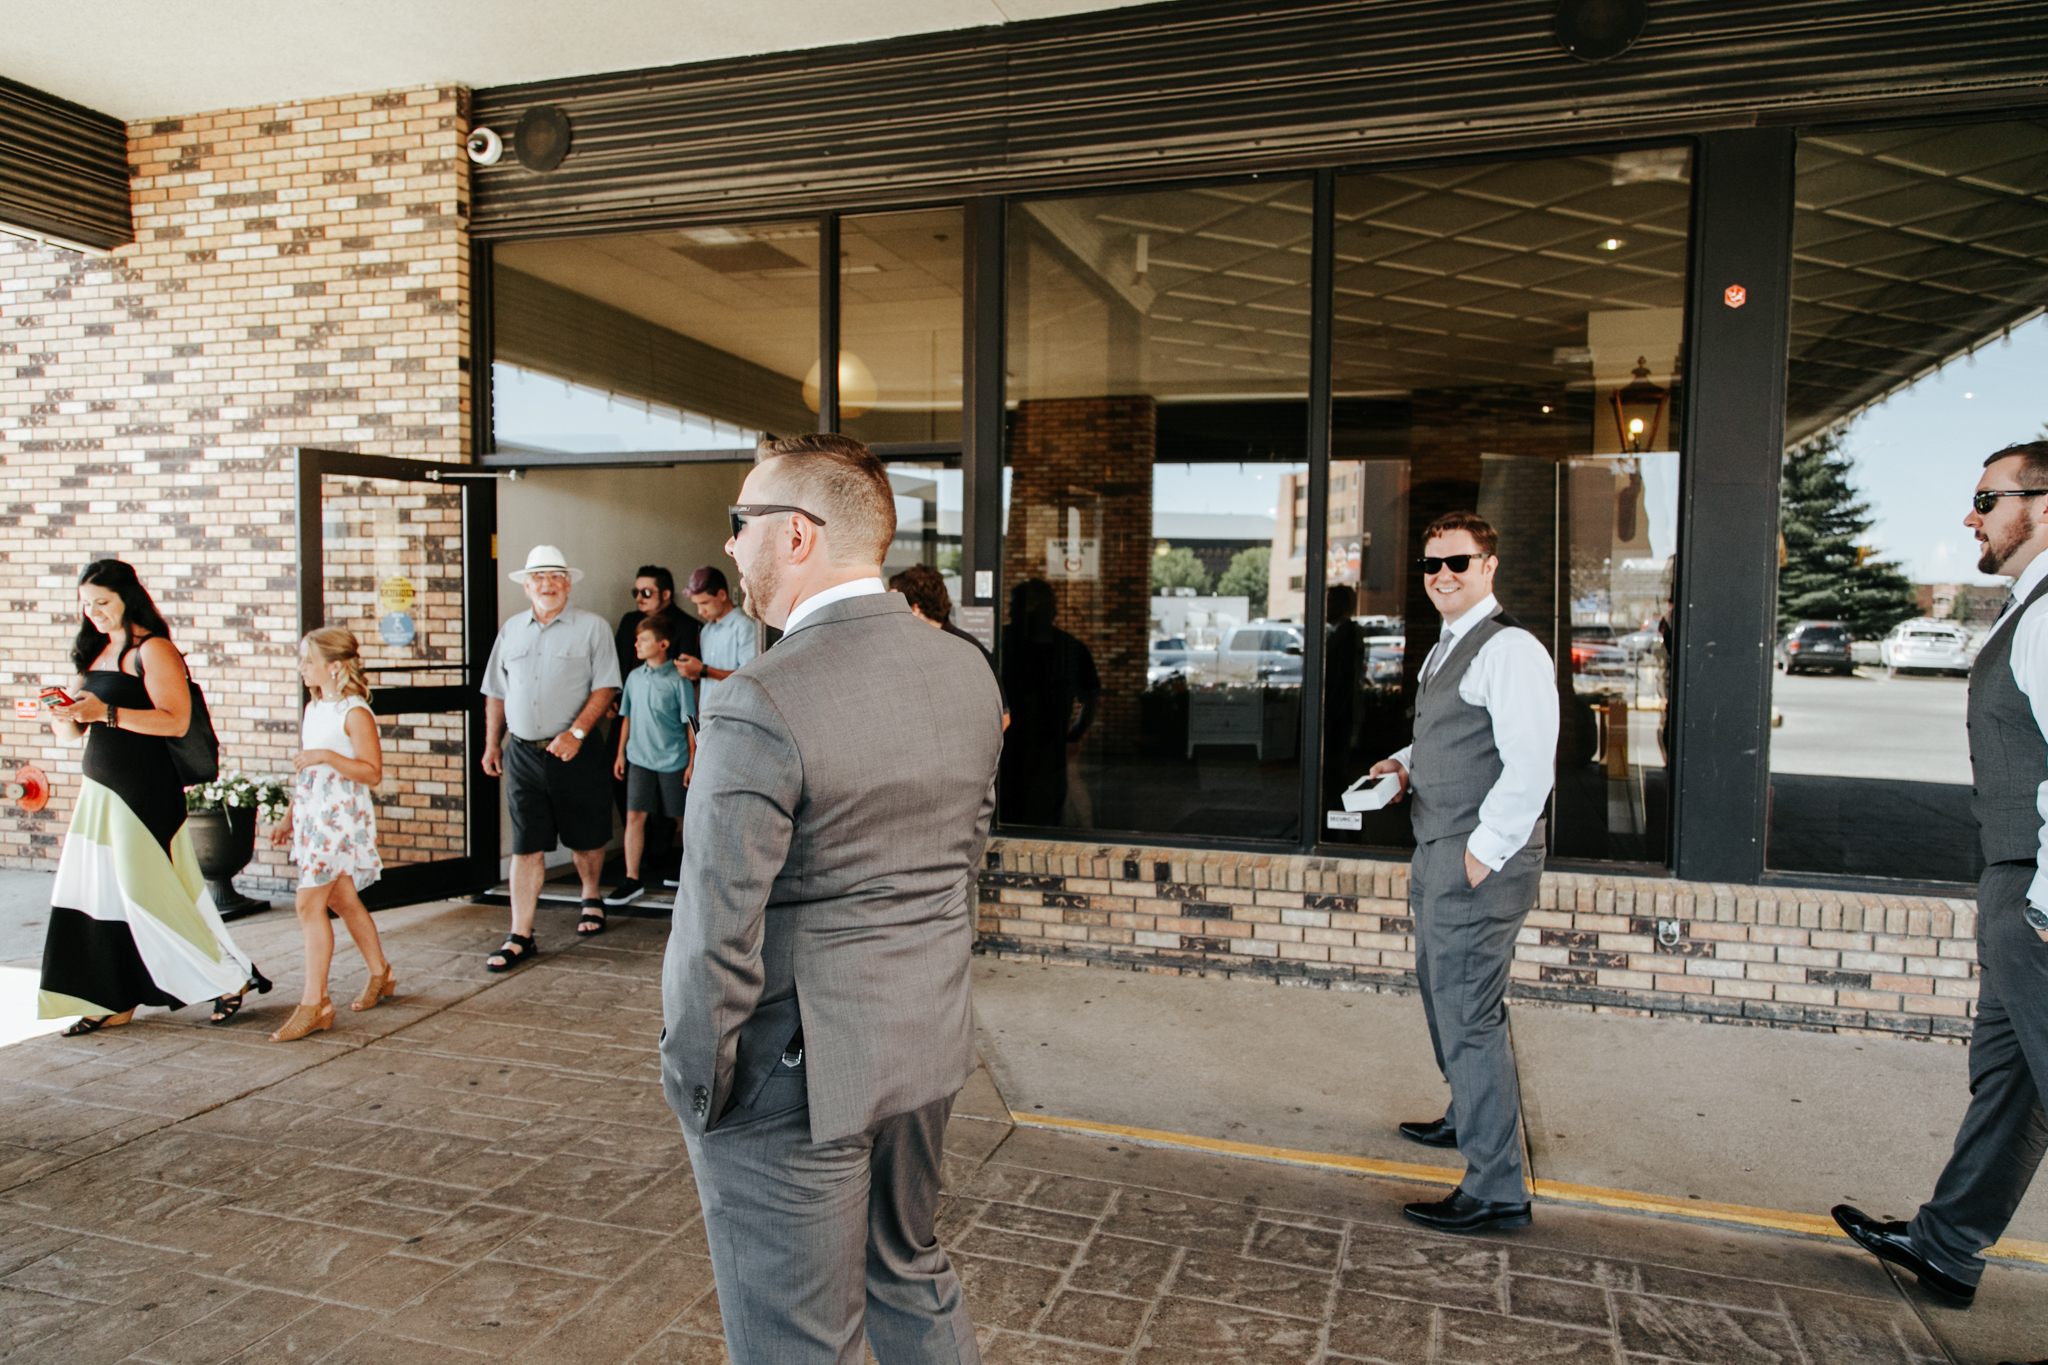 lethbridge-wedding-photographer-love-and-be-loved-photography-trent-danielle-galt-reception-picture-image-photo-19.jpg